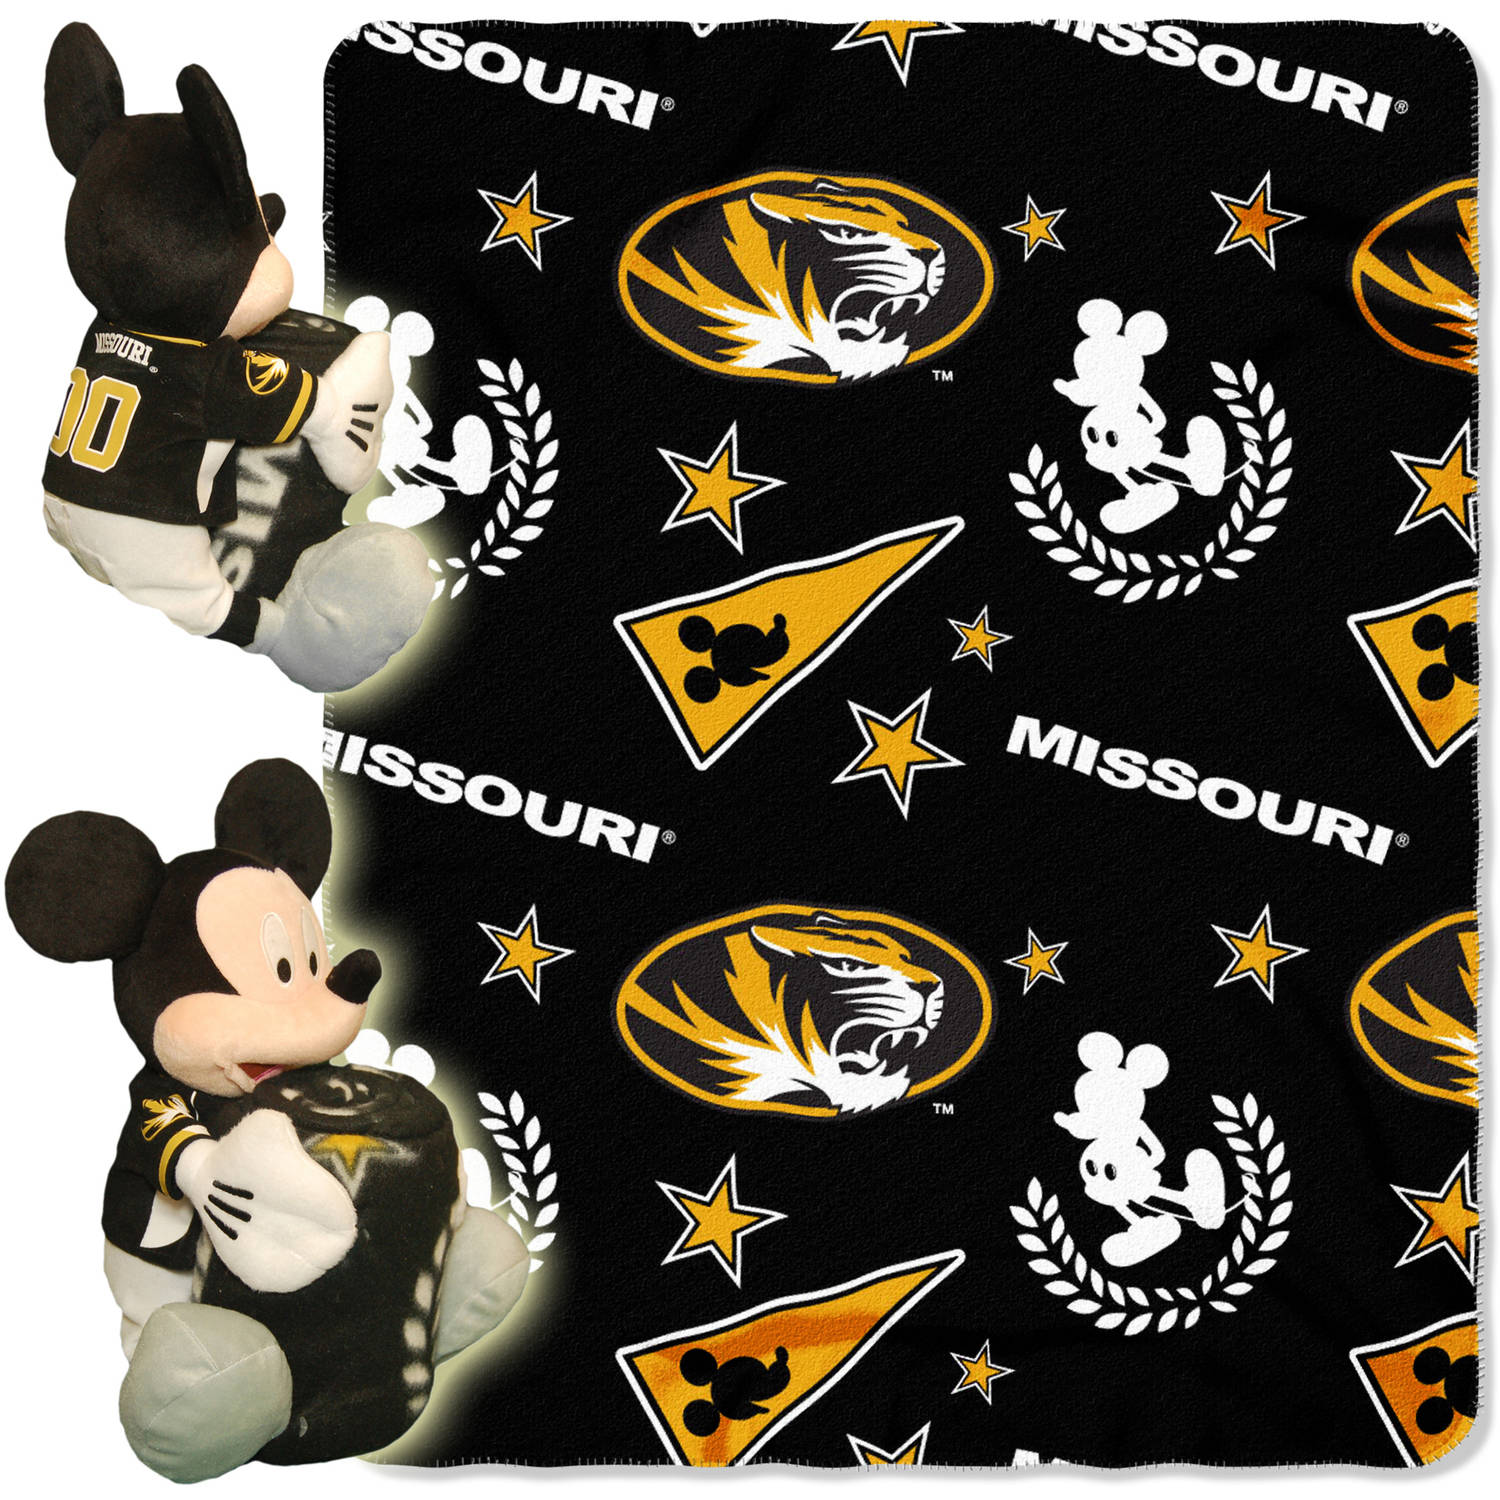 "Disney NCAA Missouri Tigers Hugger Pillow and 40"" x 50"" Throw Set"